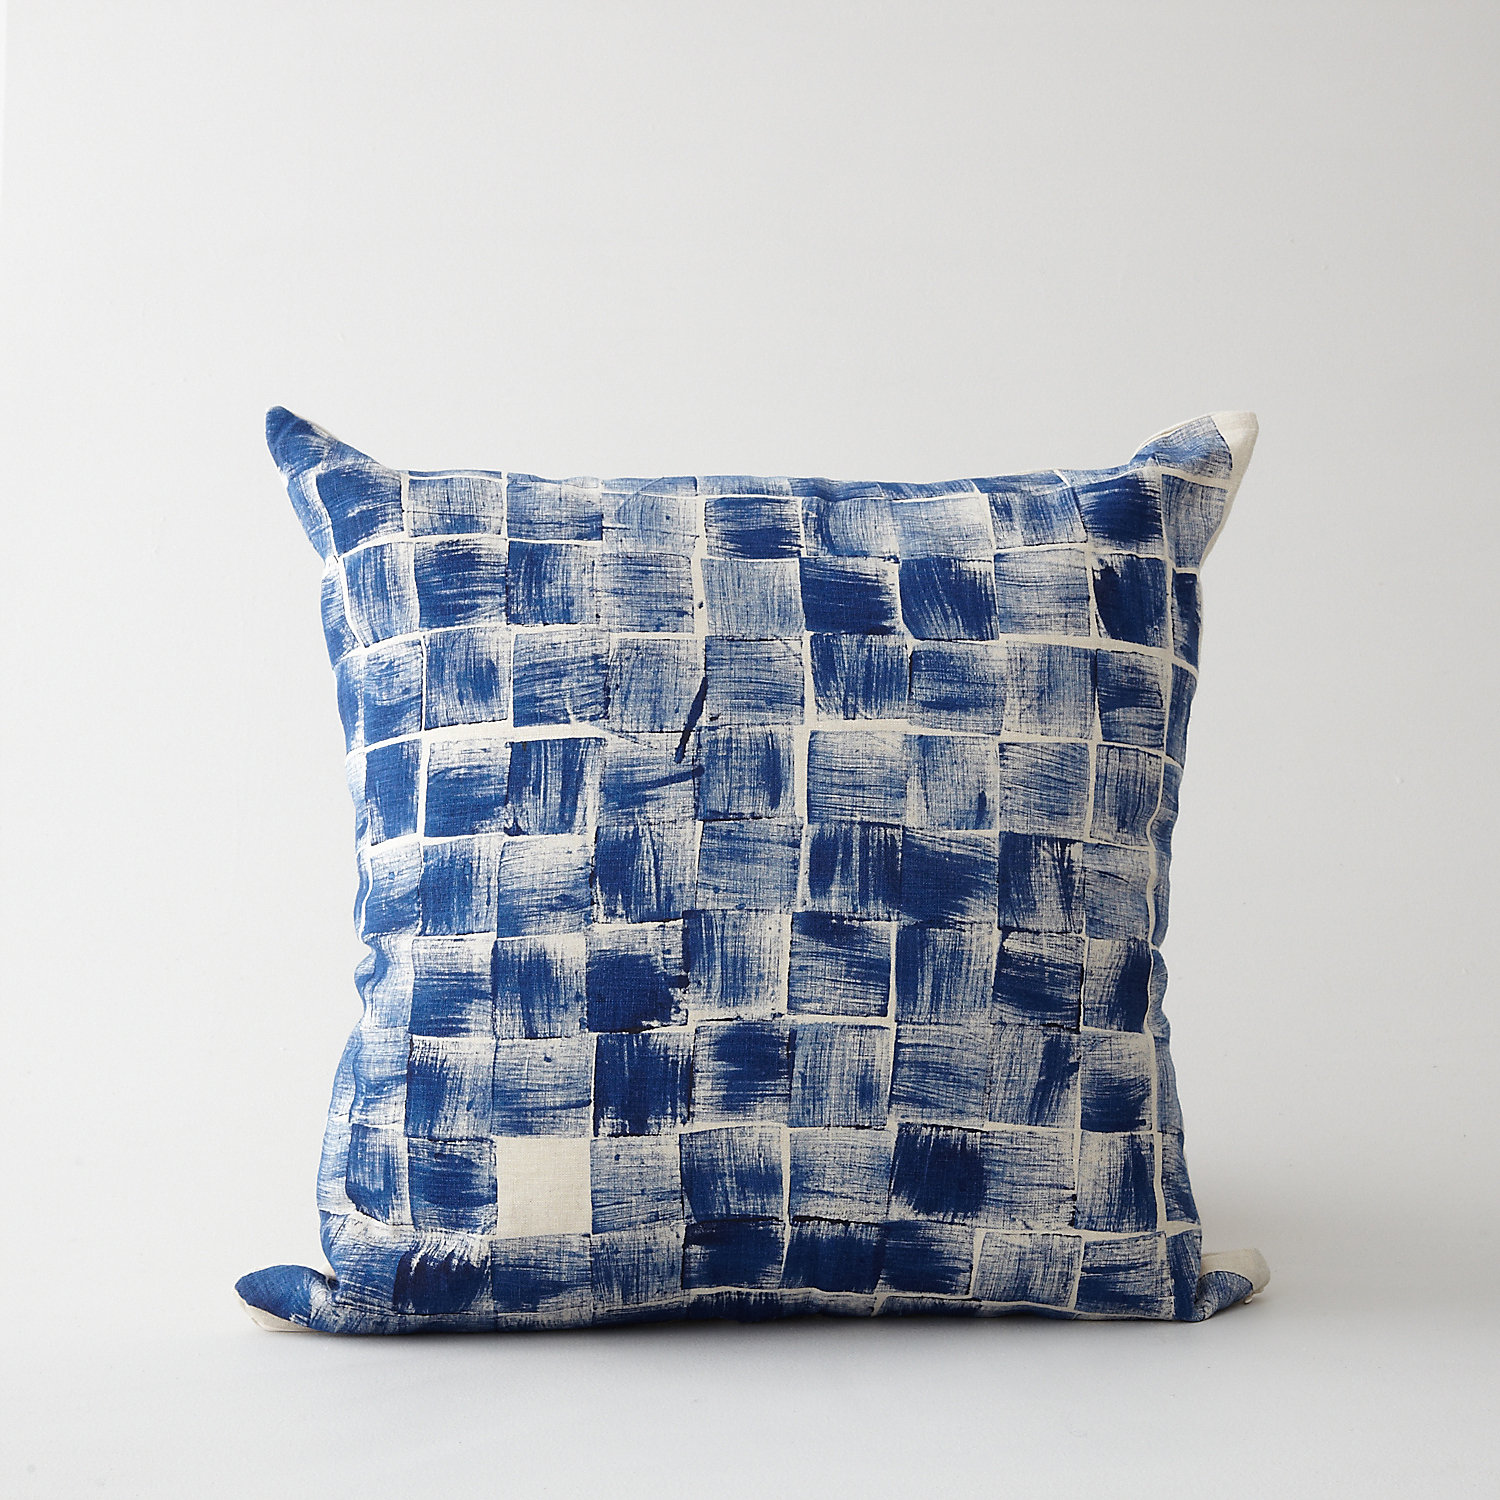 HAND PRINTED BLOCK PILLOW